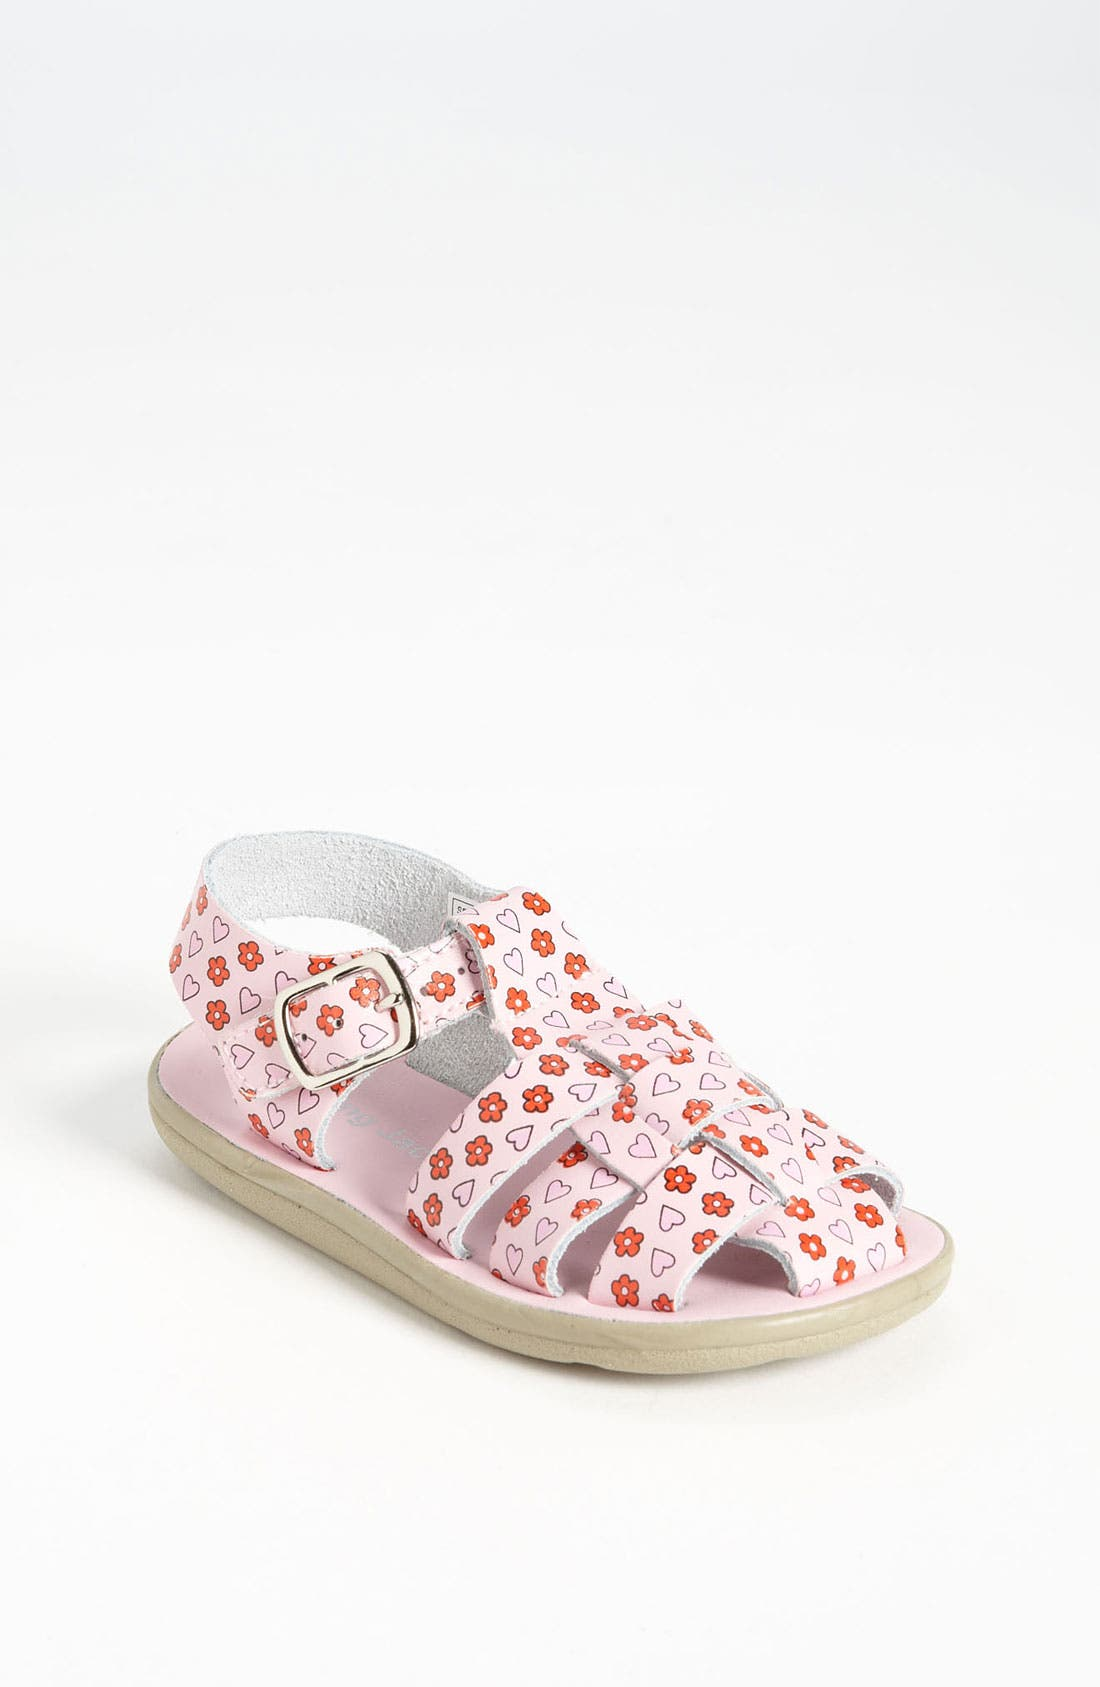 Alternate Image 1 Selected - Jumping Jacks 'Sea Fish' Sandal (Walker & Toddler)